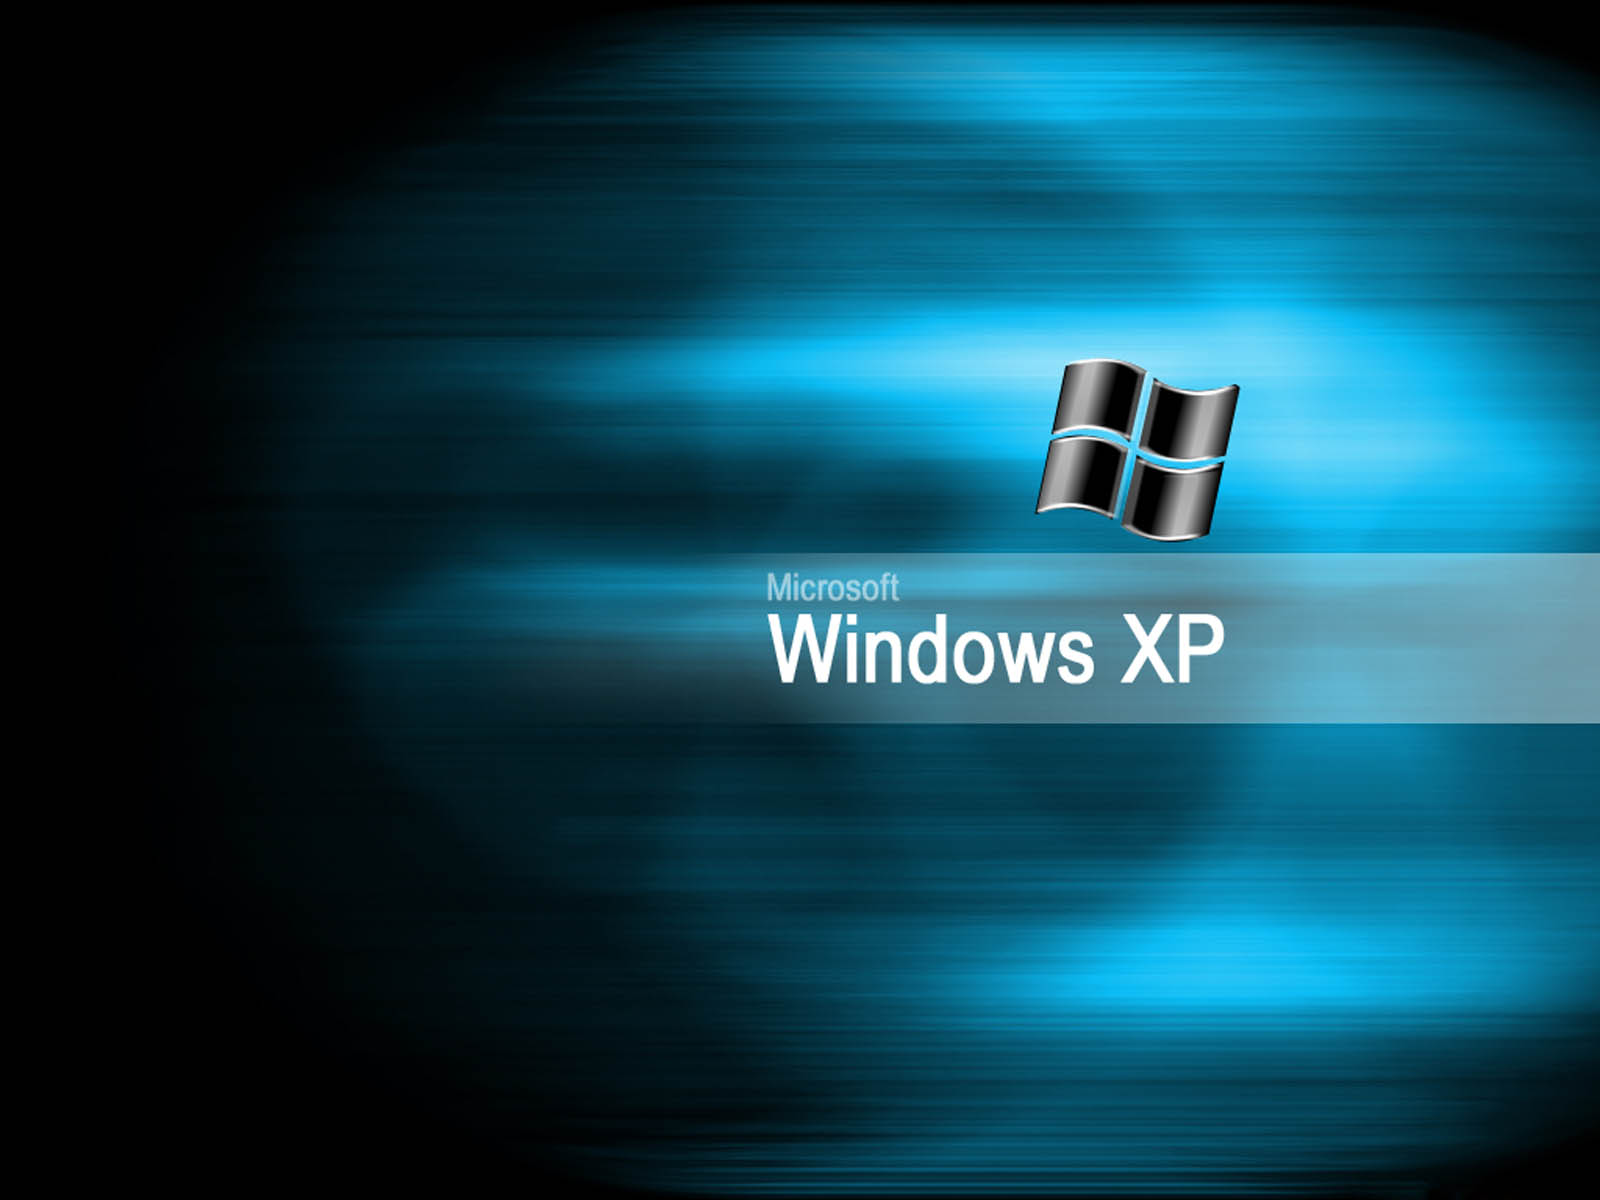 screensaver xp free download - photo #49